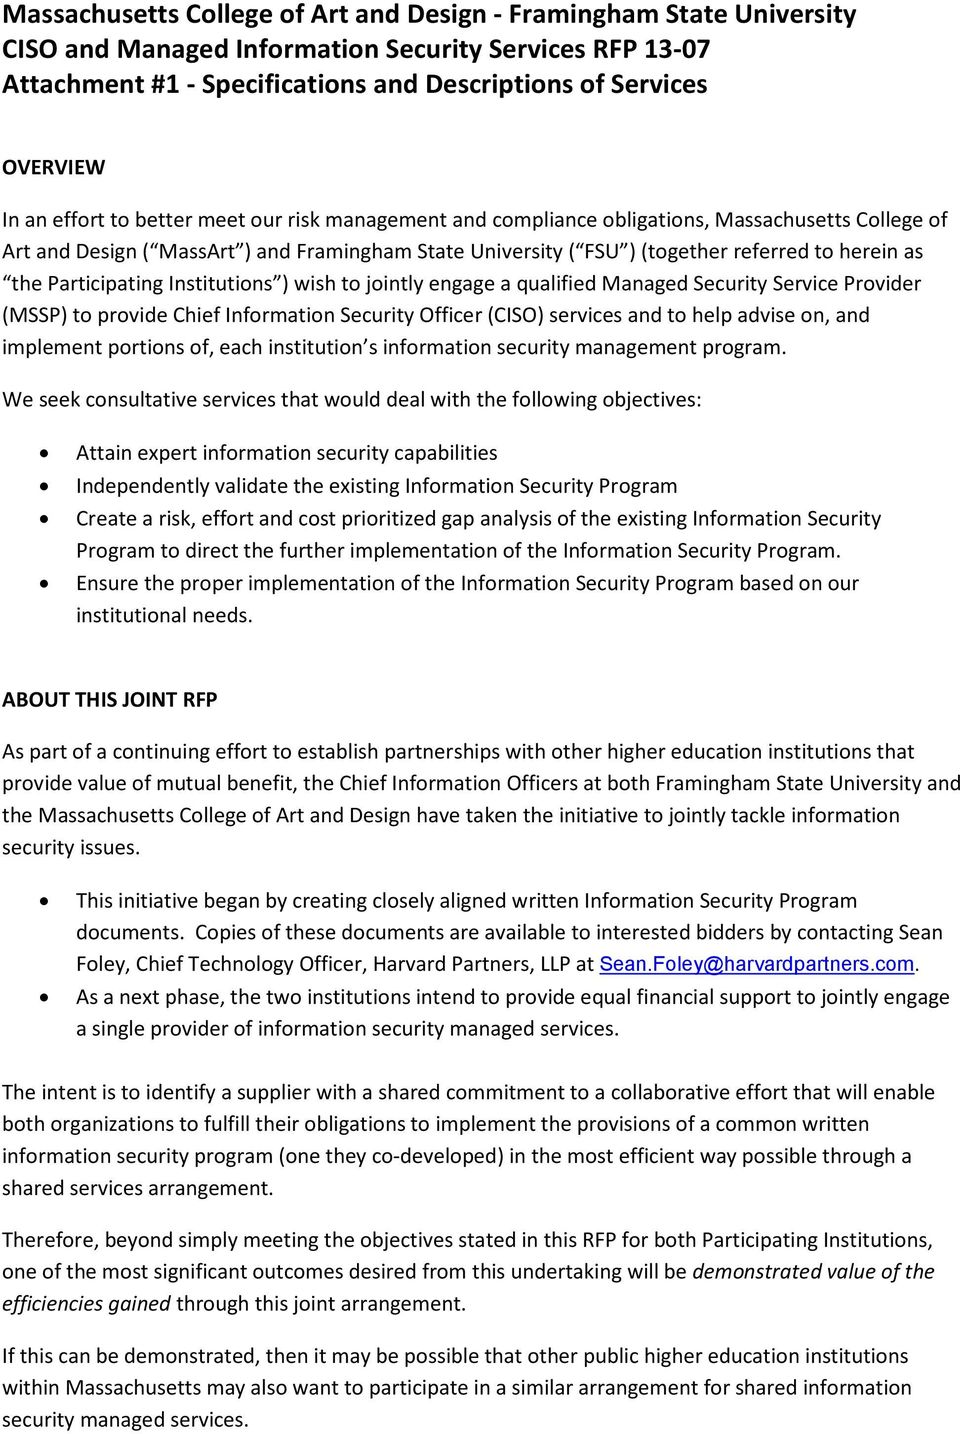 the Participating Institutions ) wish to jointly engage a qualified Managed Security Service Provider (MSSP) to provide Chief Information Security Officer (CISO) services and to help advise on, and